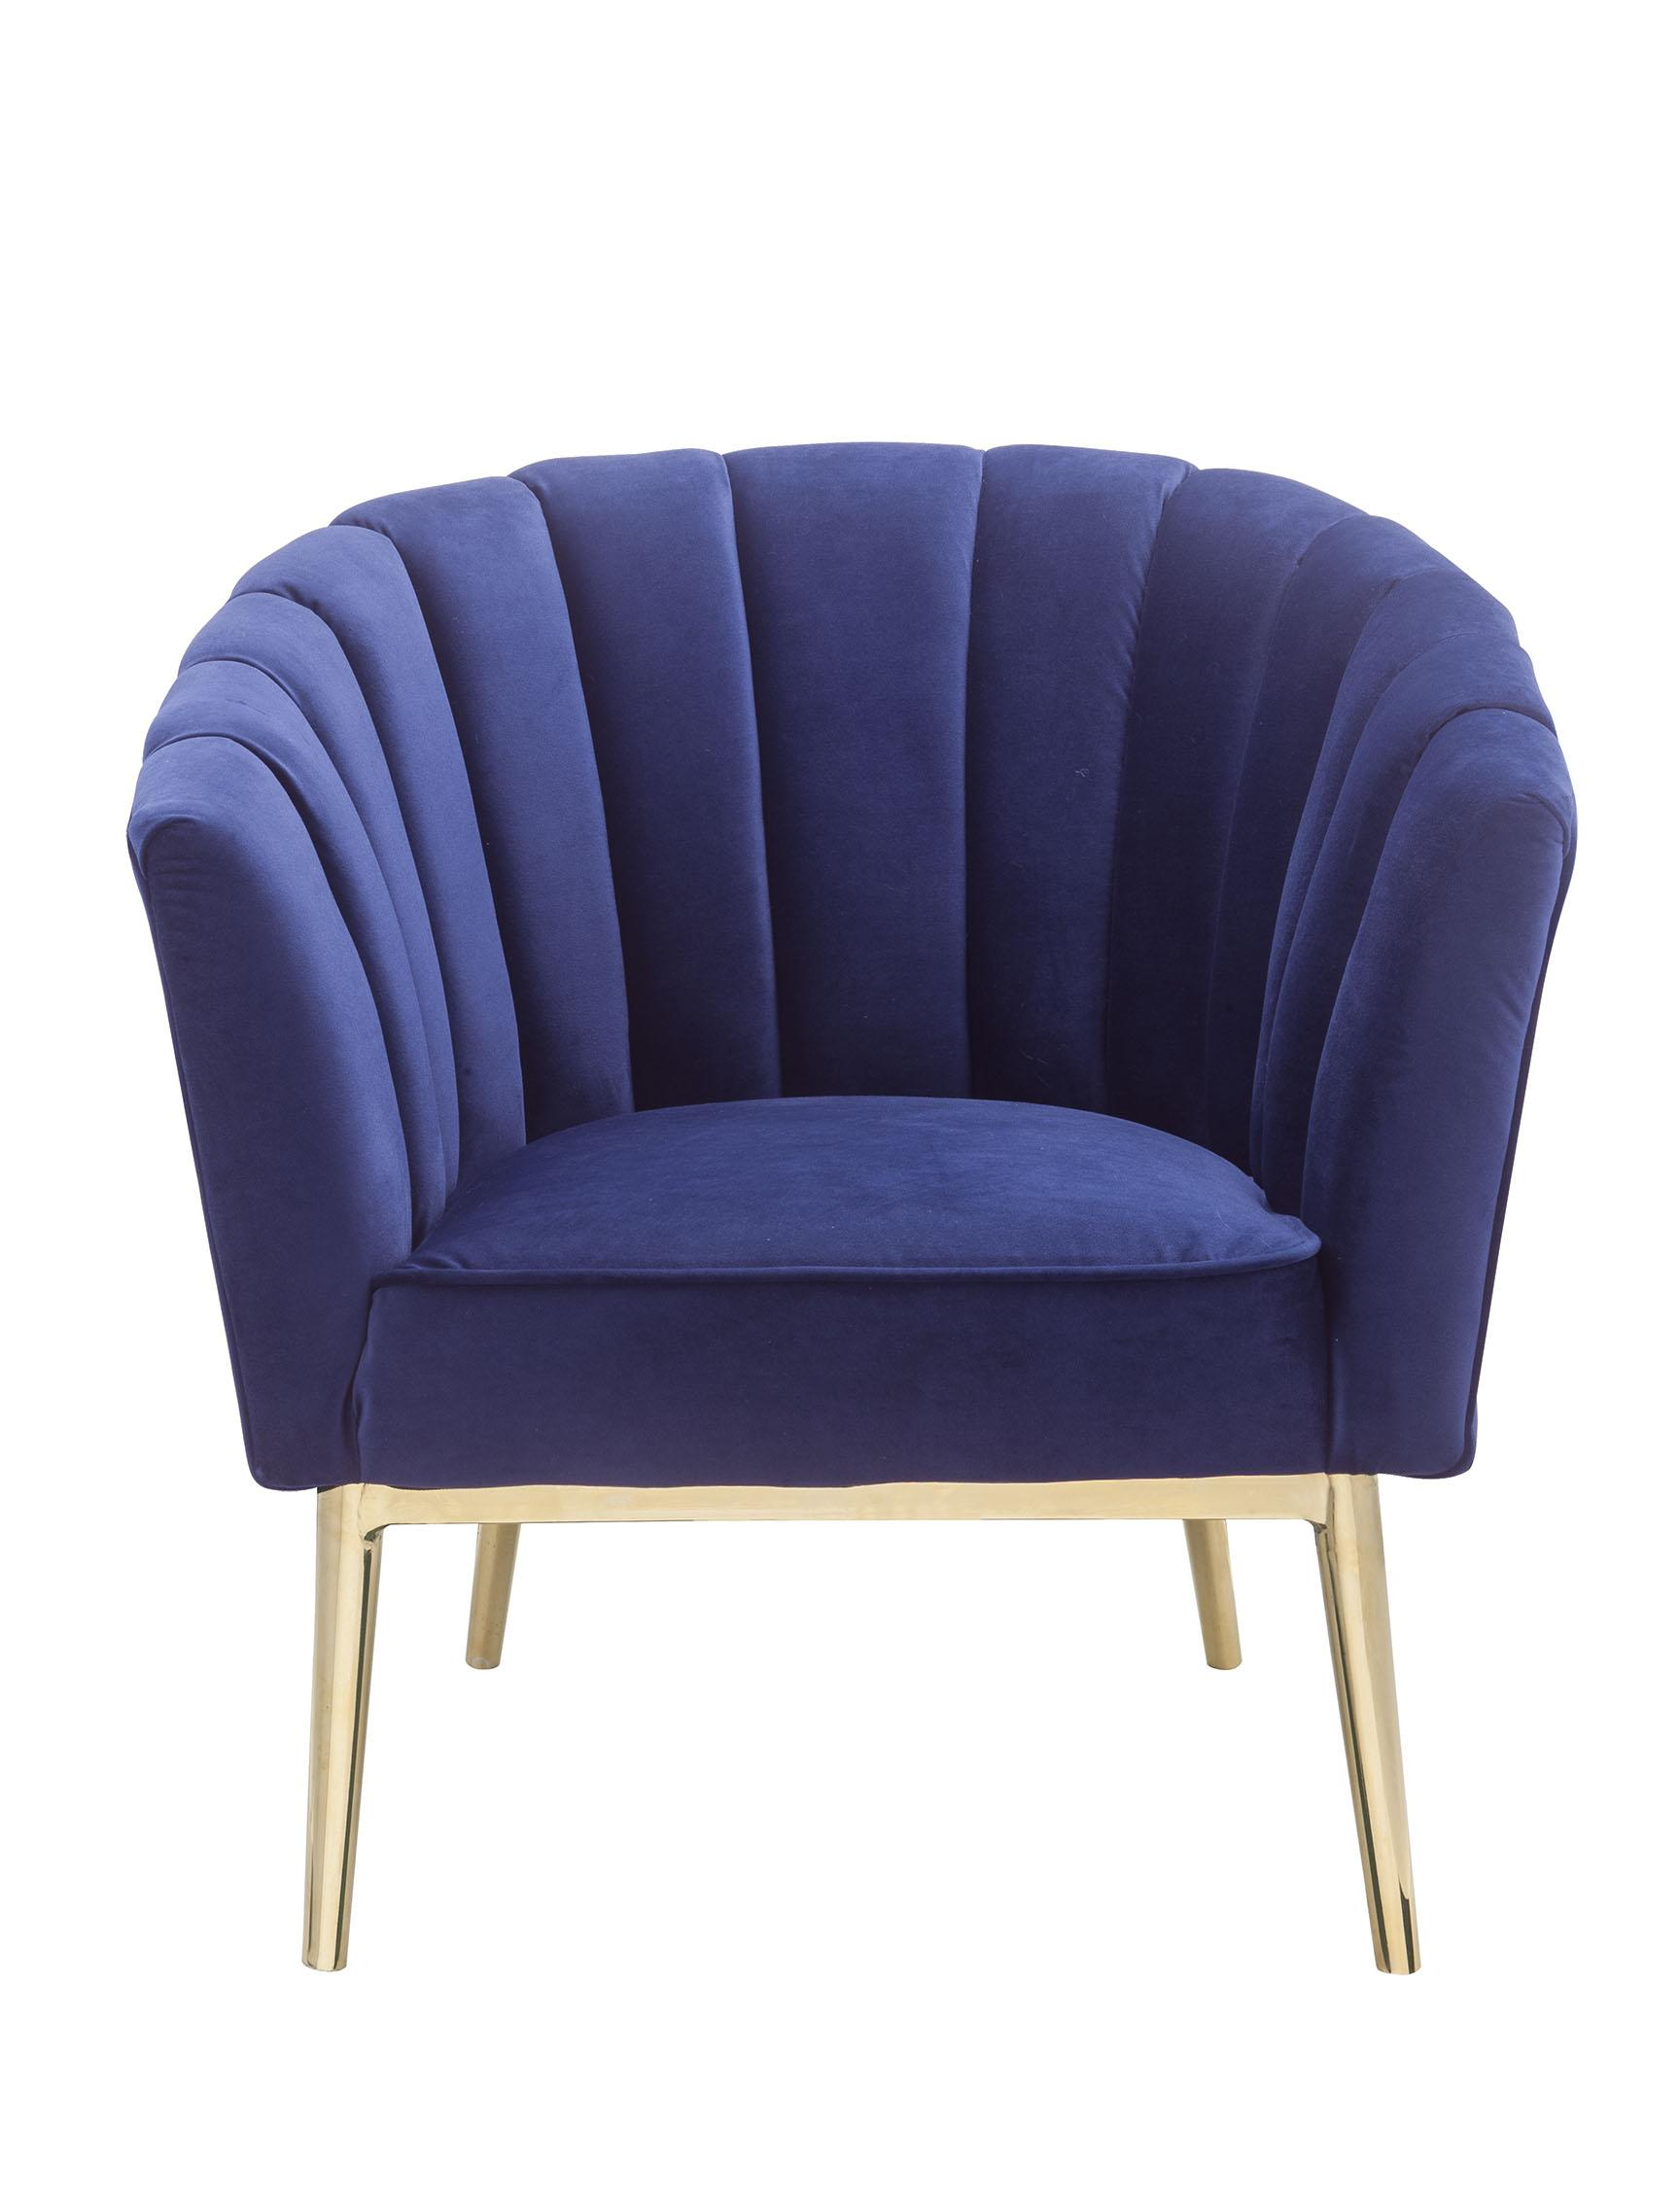 Sensational Acme Furniture Colla Blue Accent Chair Pabps2019 Chair Design Images Pabps2019Com